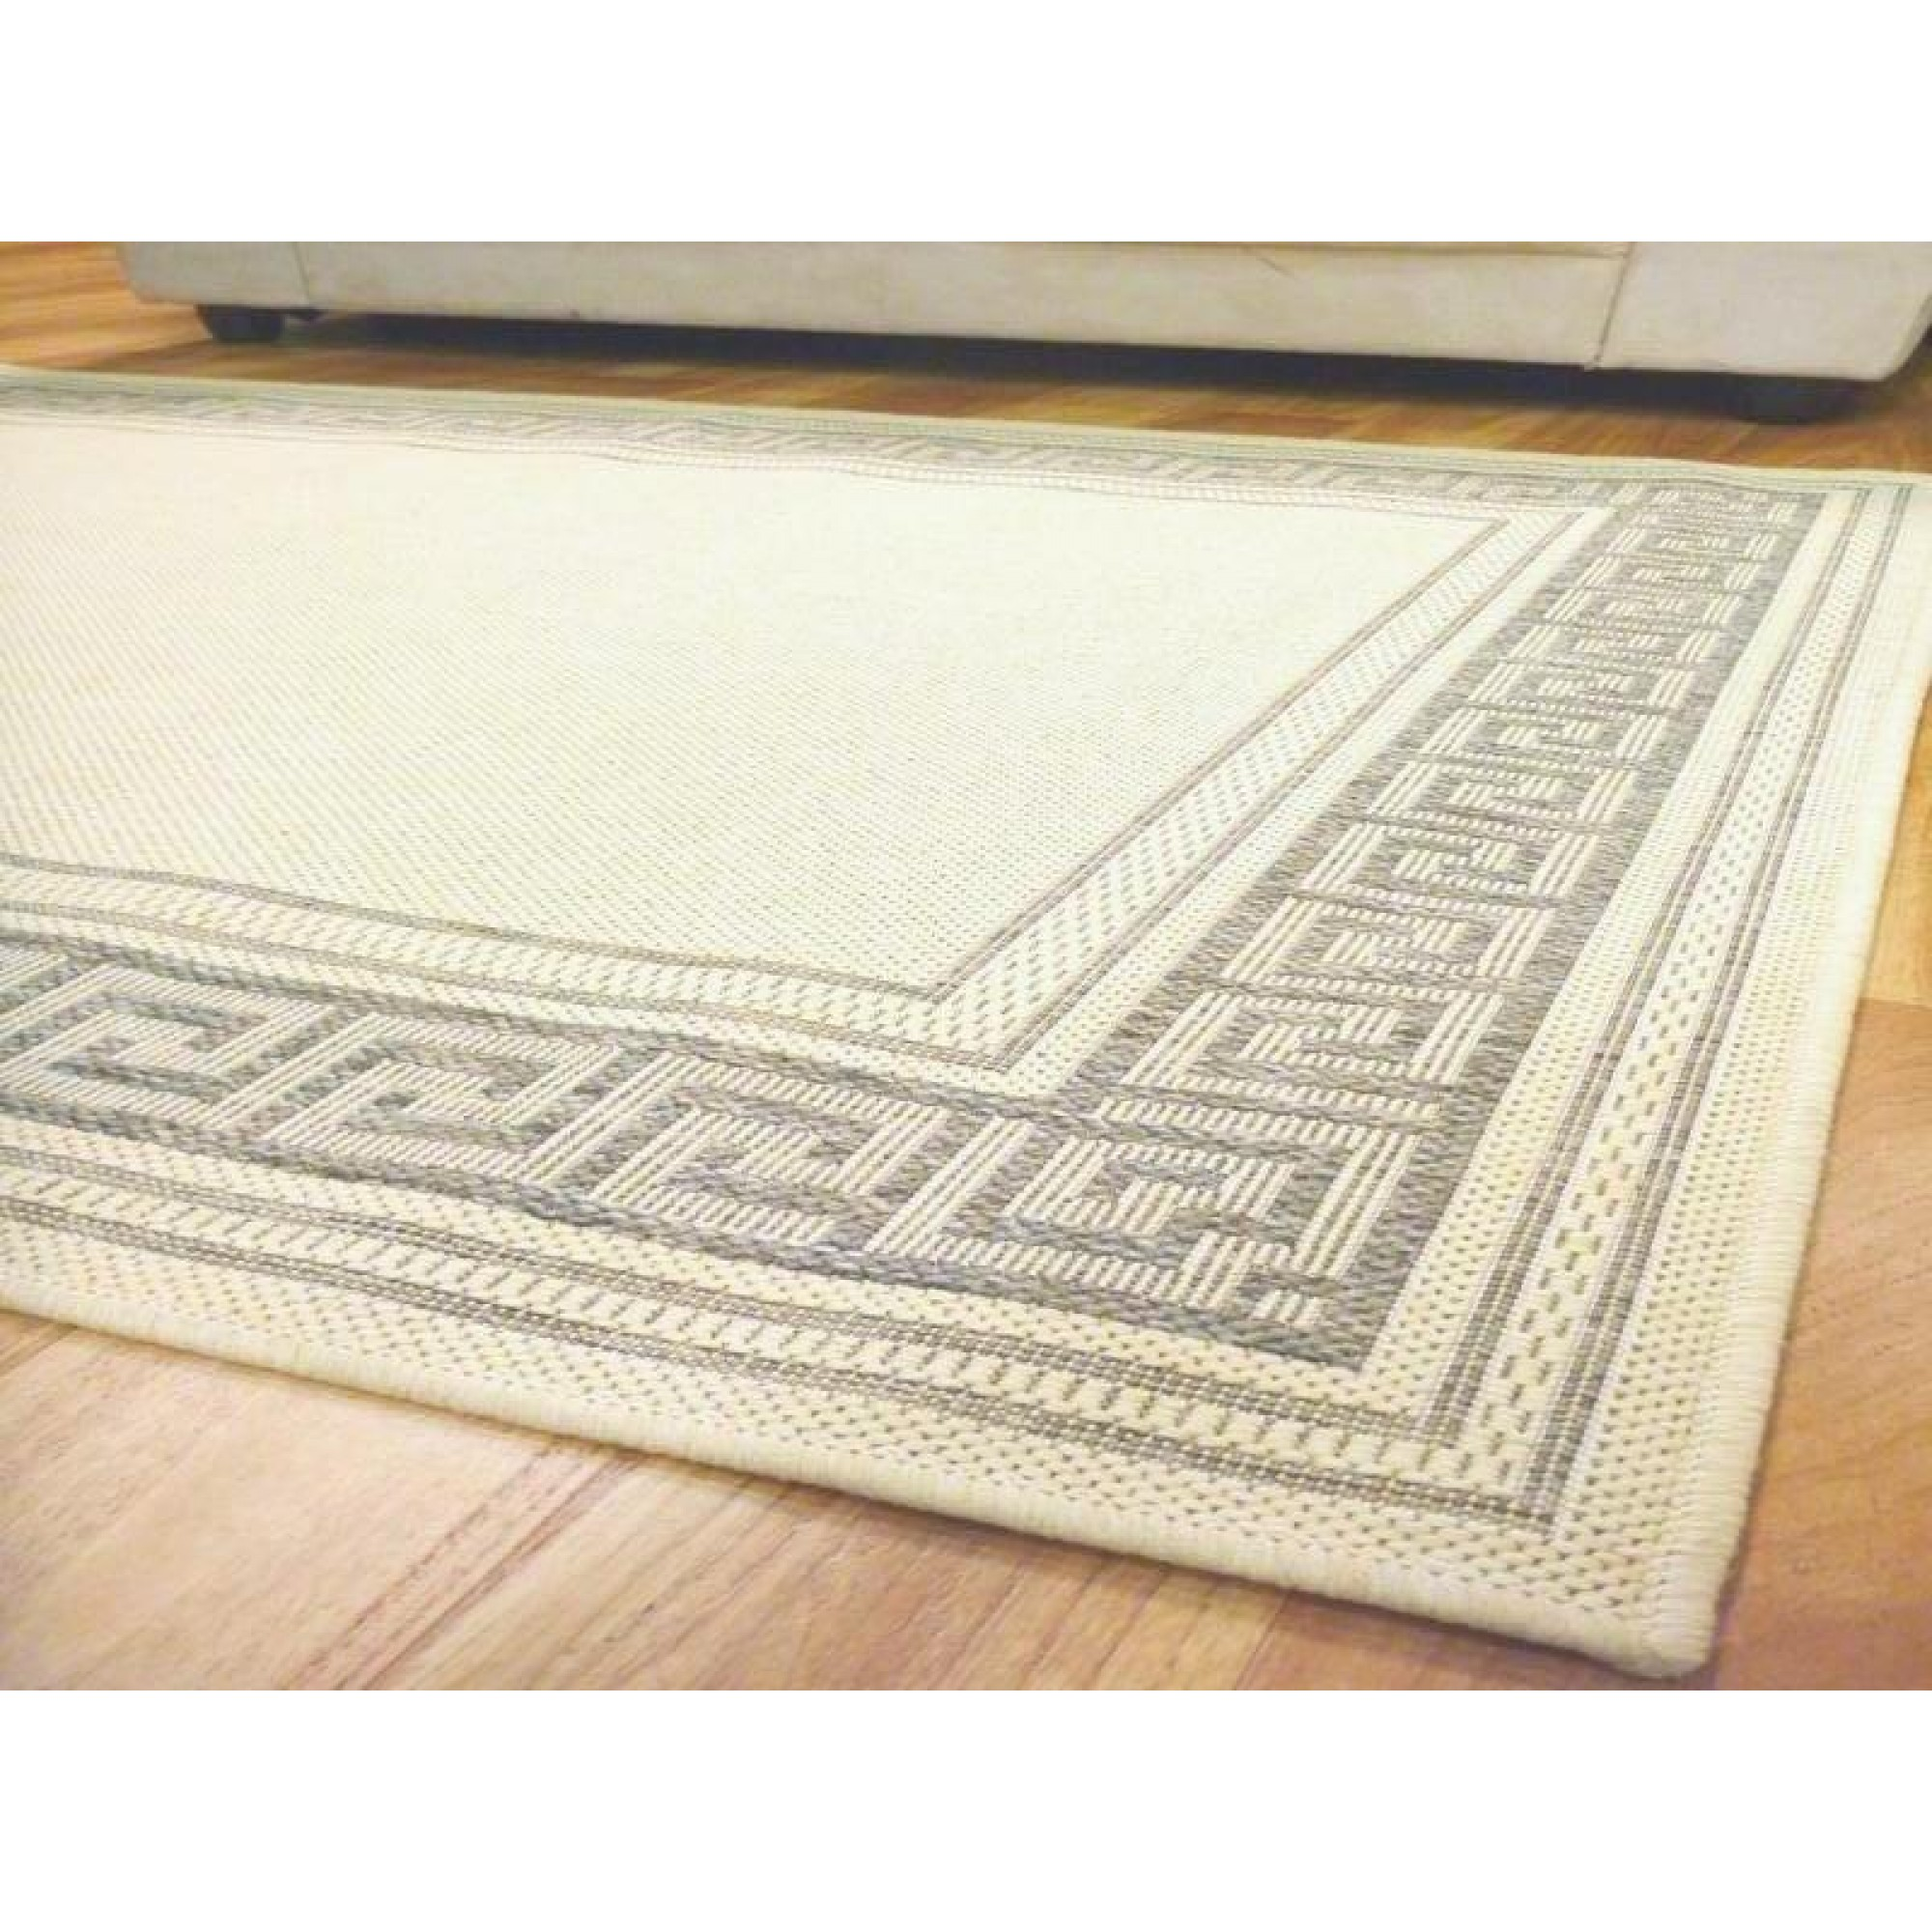 Ikea Tapijt Rond Cool Good Tapis Corde Ikea Tapis En Sisal Ikea Wonderful